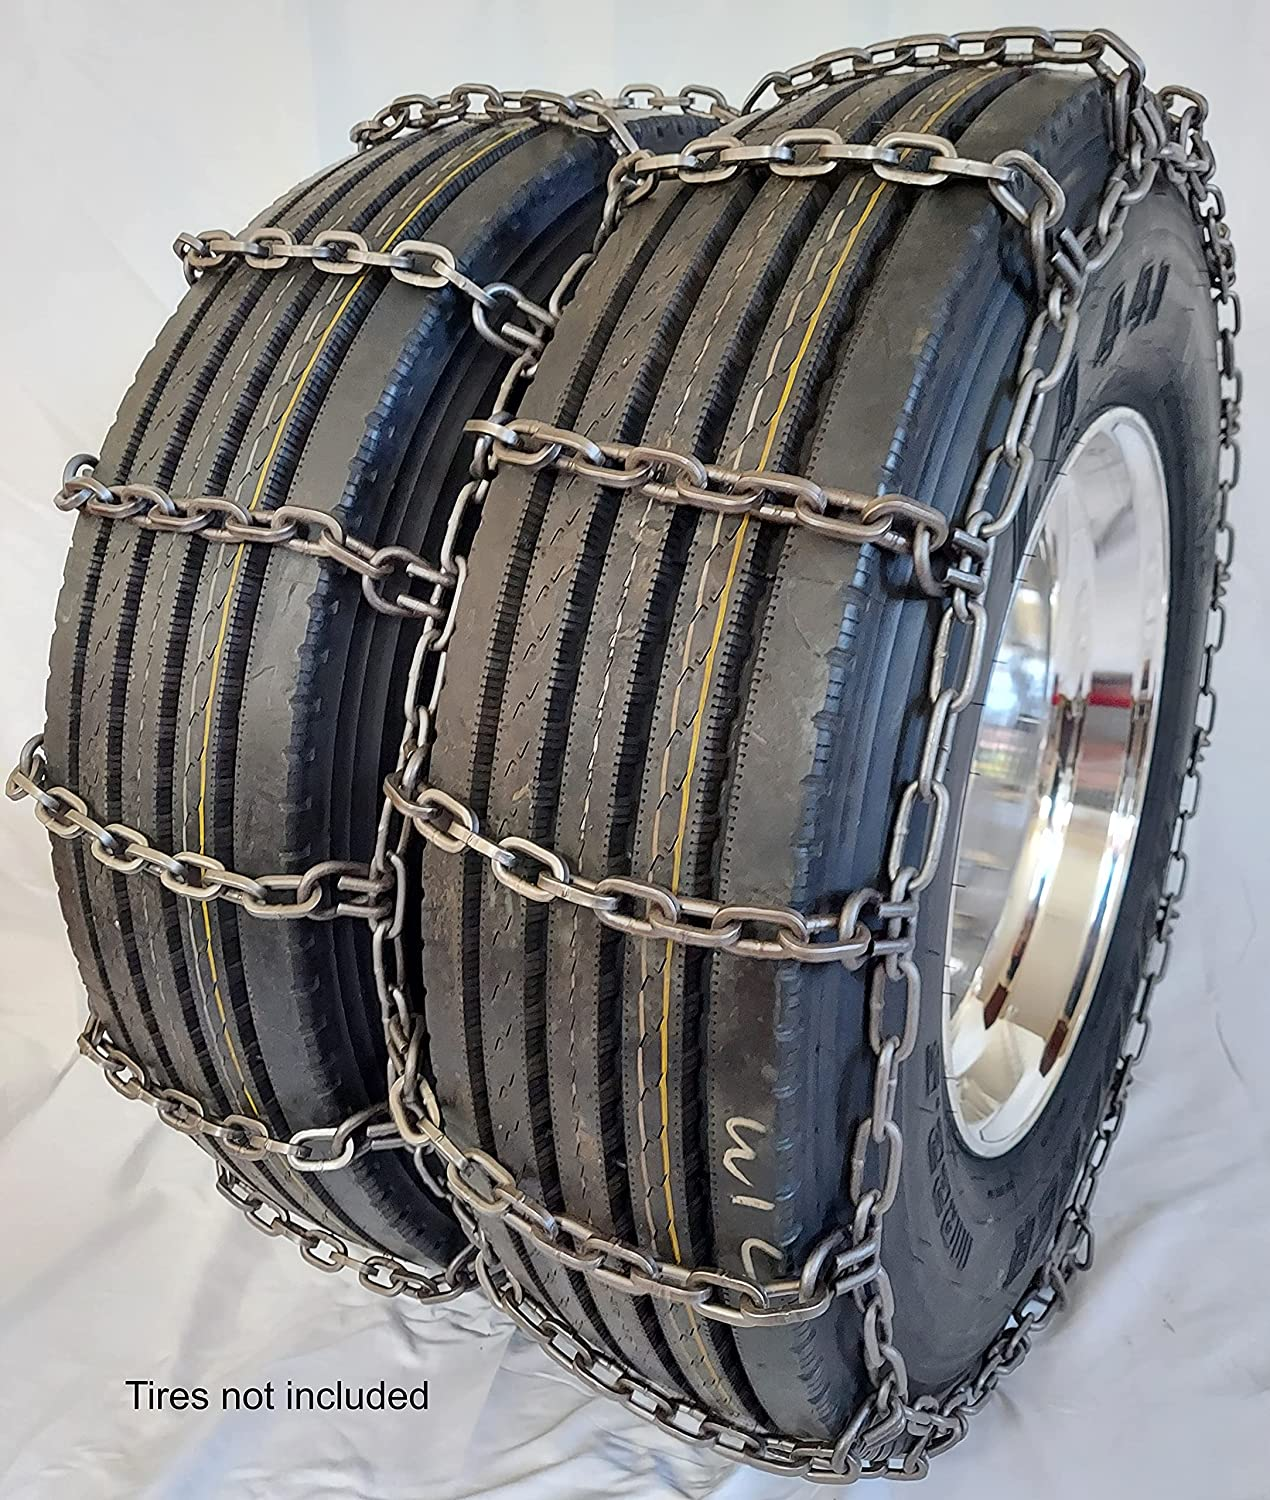 GSL-4149 Time sale Alloy Truck Square Rod 10.00-22 2 Award Tire Chains 11-24.5